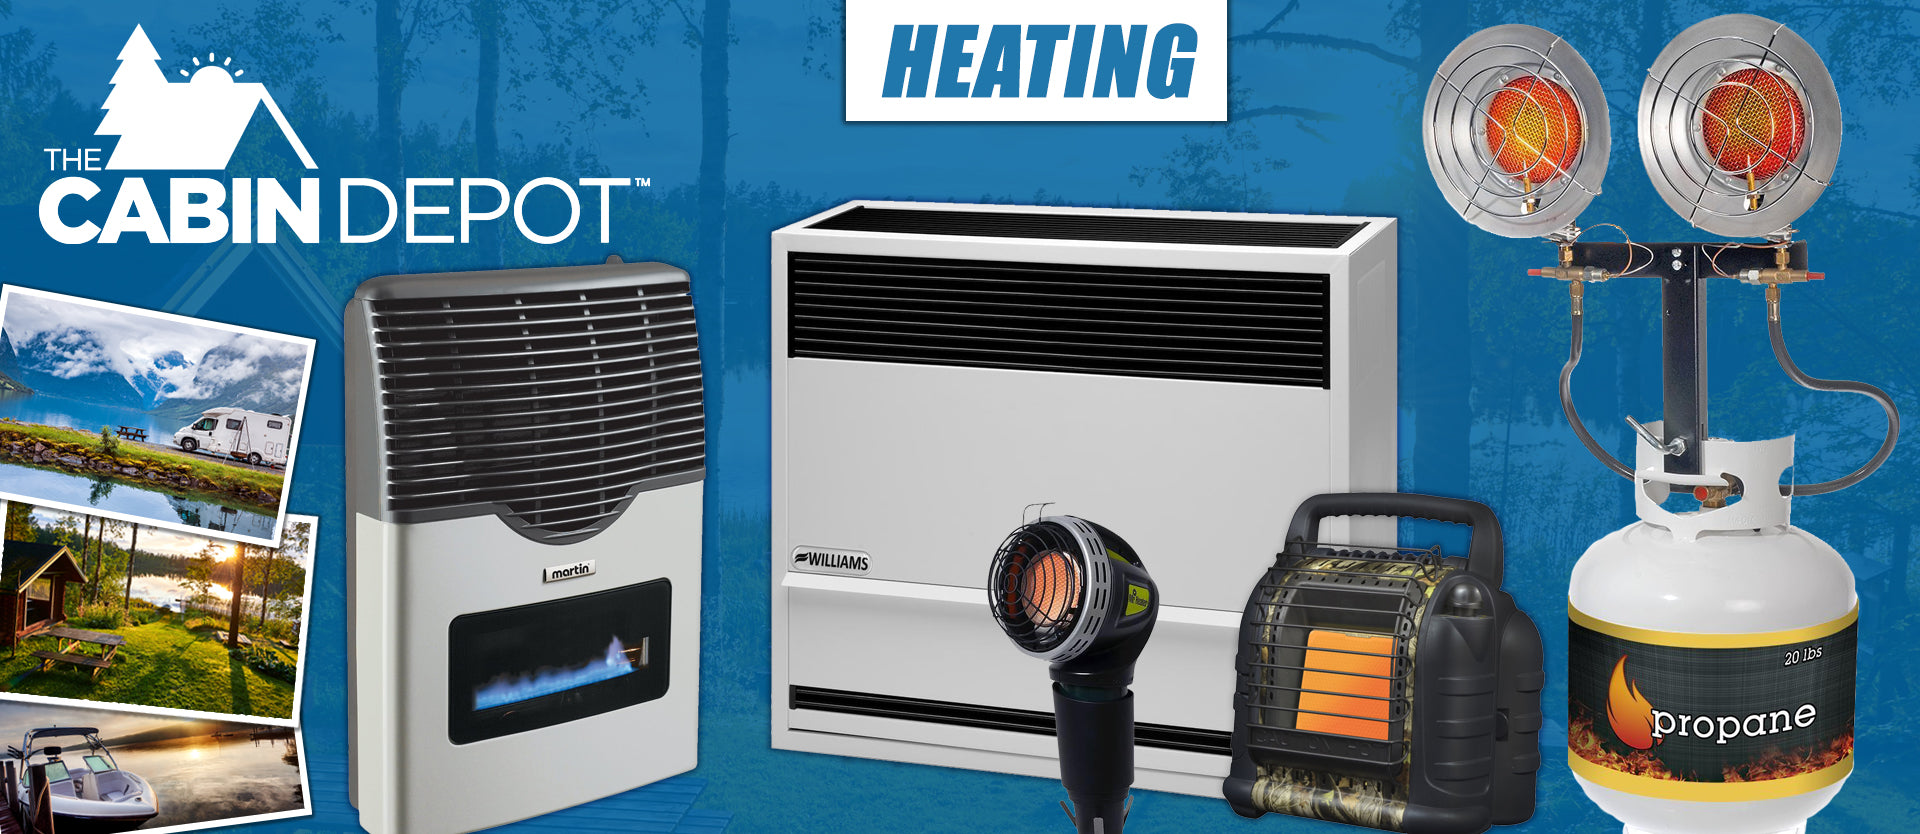 Heating Propane The Cabin Depot ™ Canada